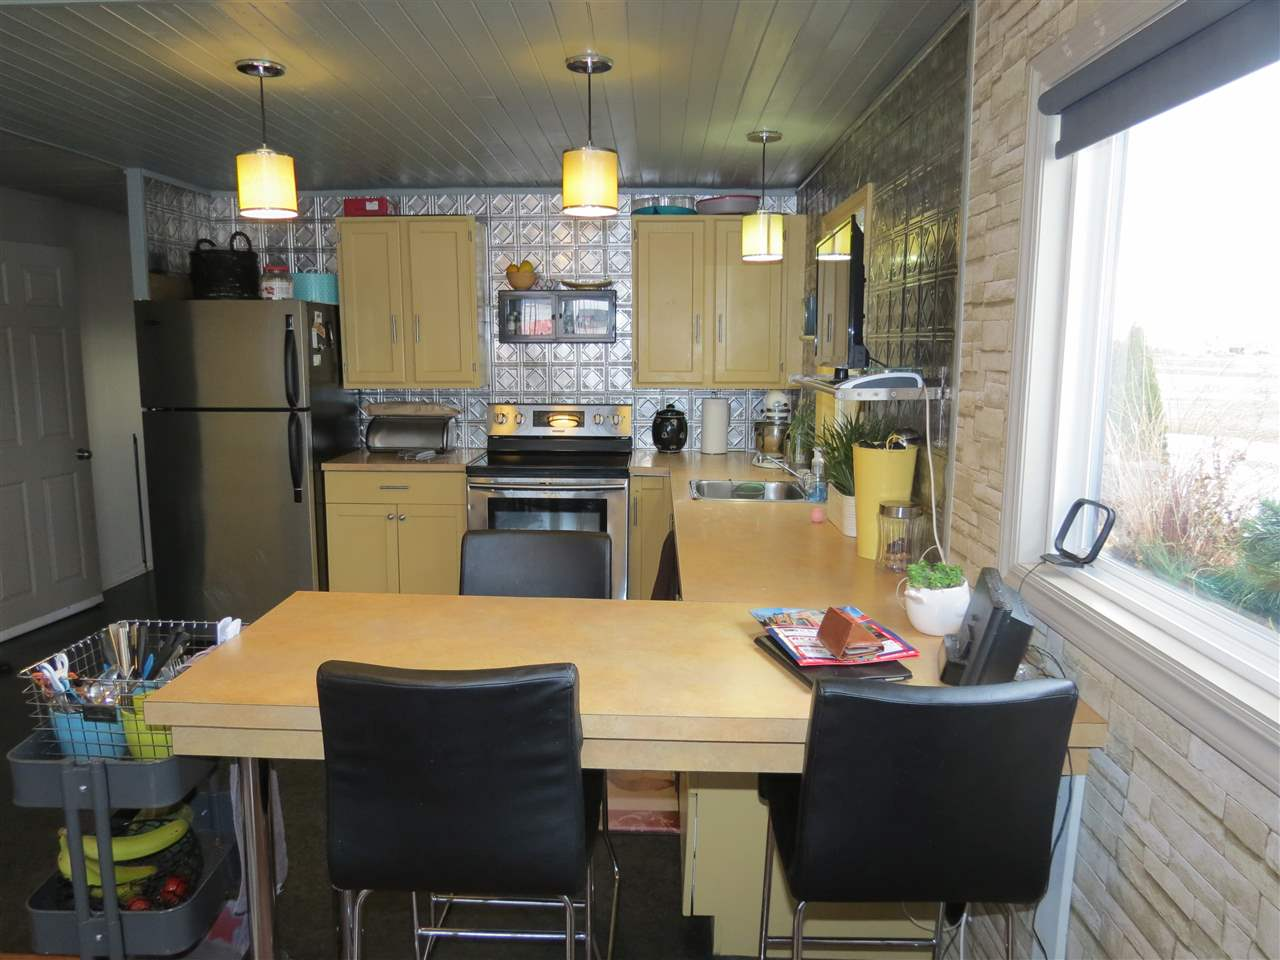 Photo 11: 55231 RR 261: Rural Sturgeon County Manufactured Home for sale : MLS® # E4051426